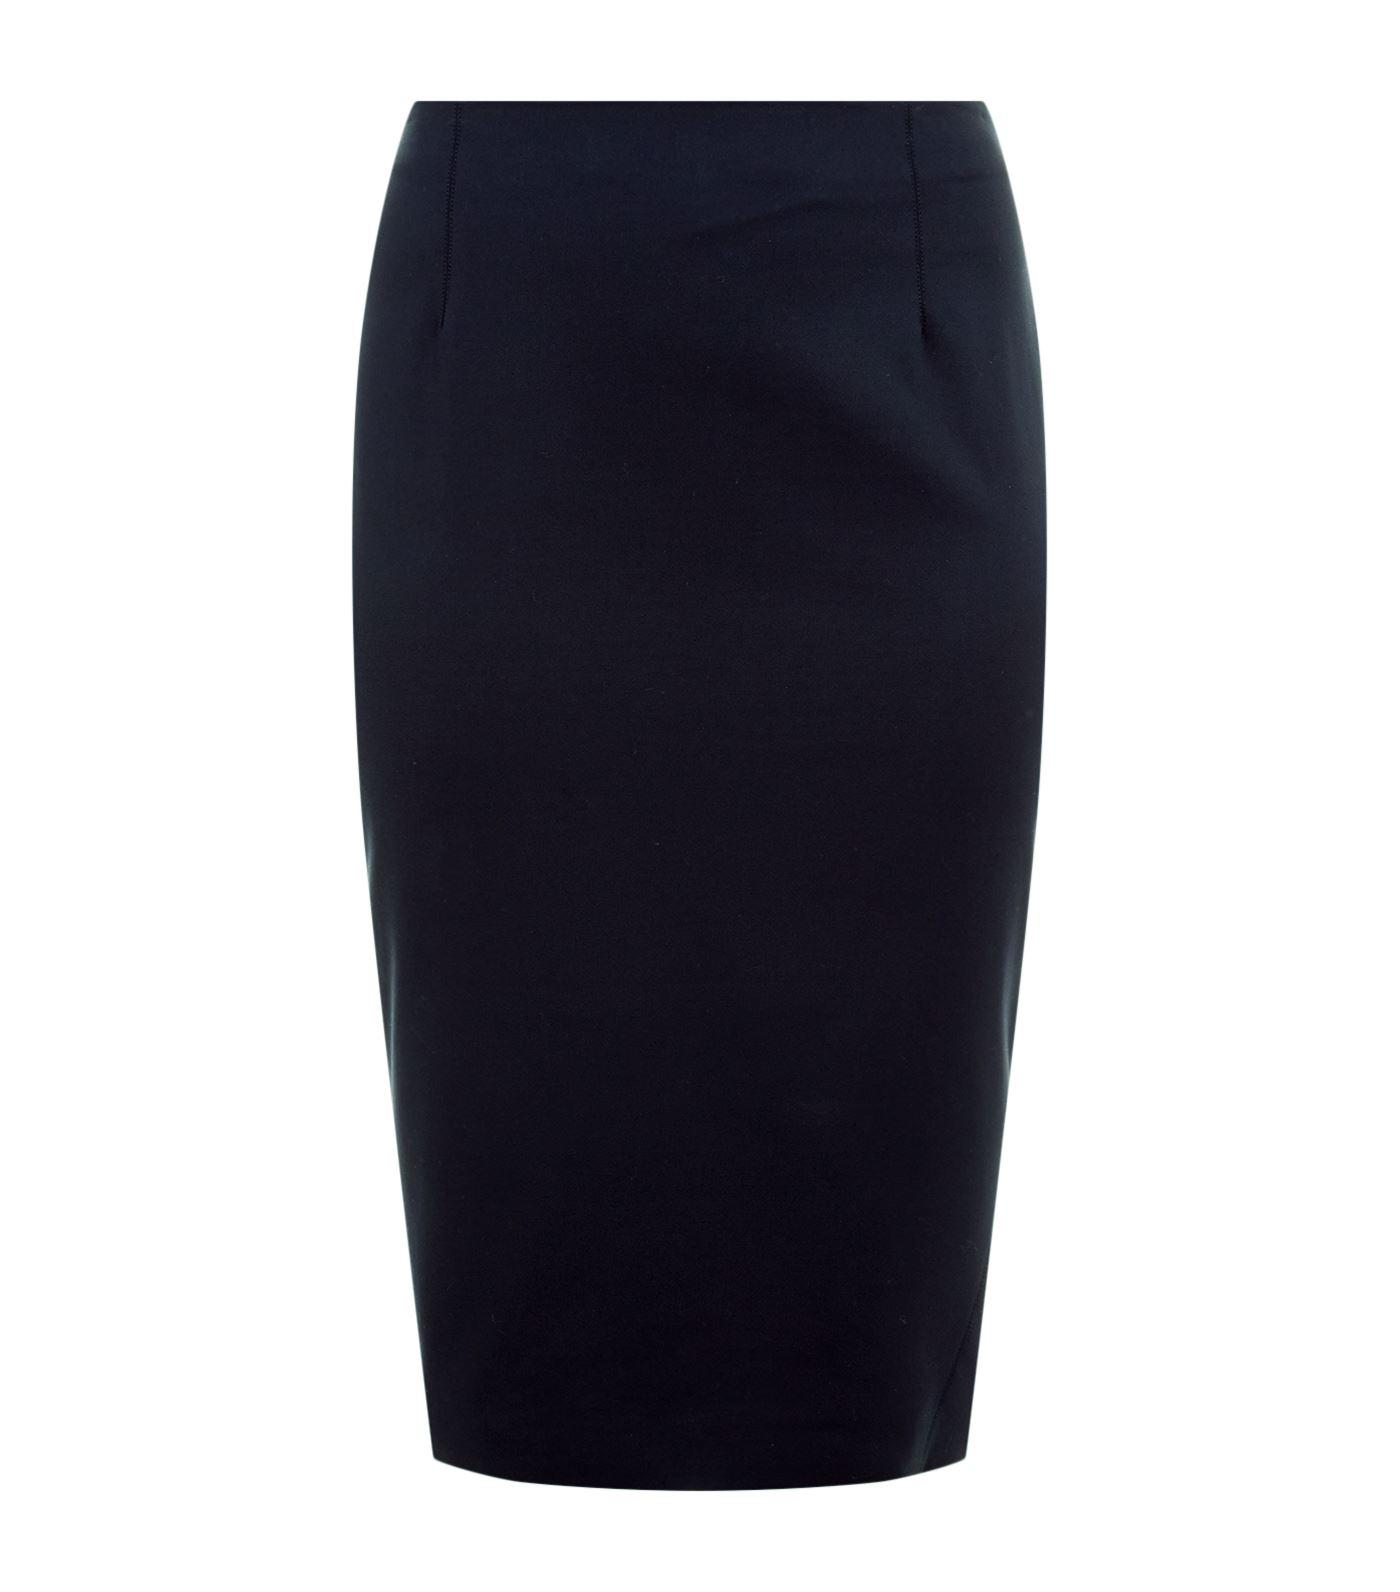 Marina Rinaldi Stretch Cotton Pencil Skirt In Navy